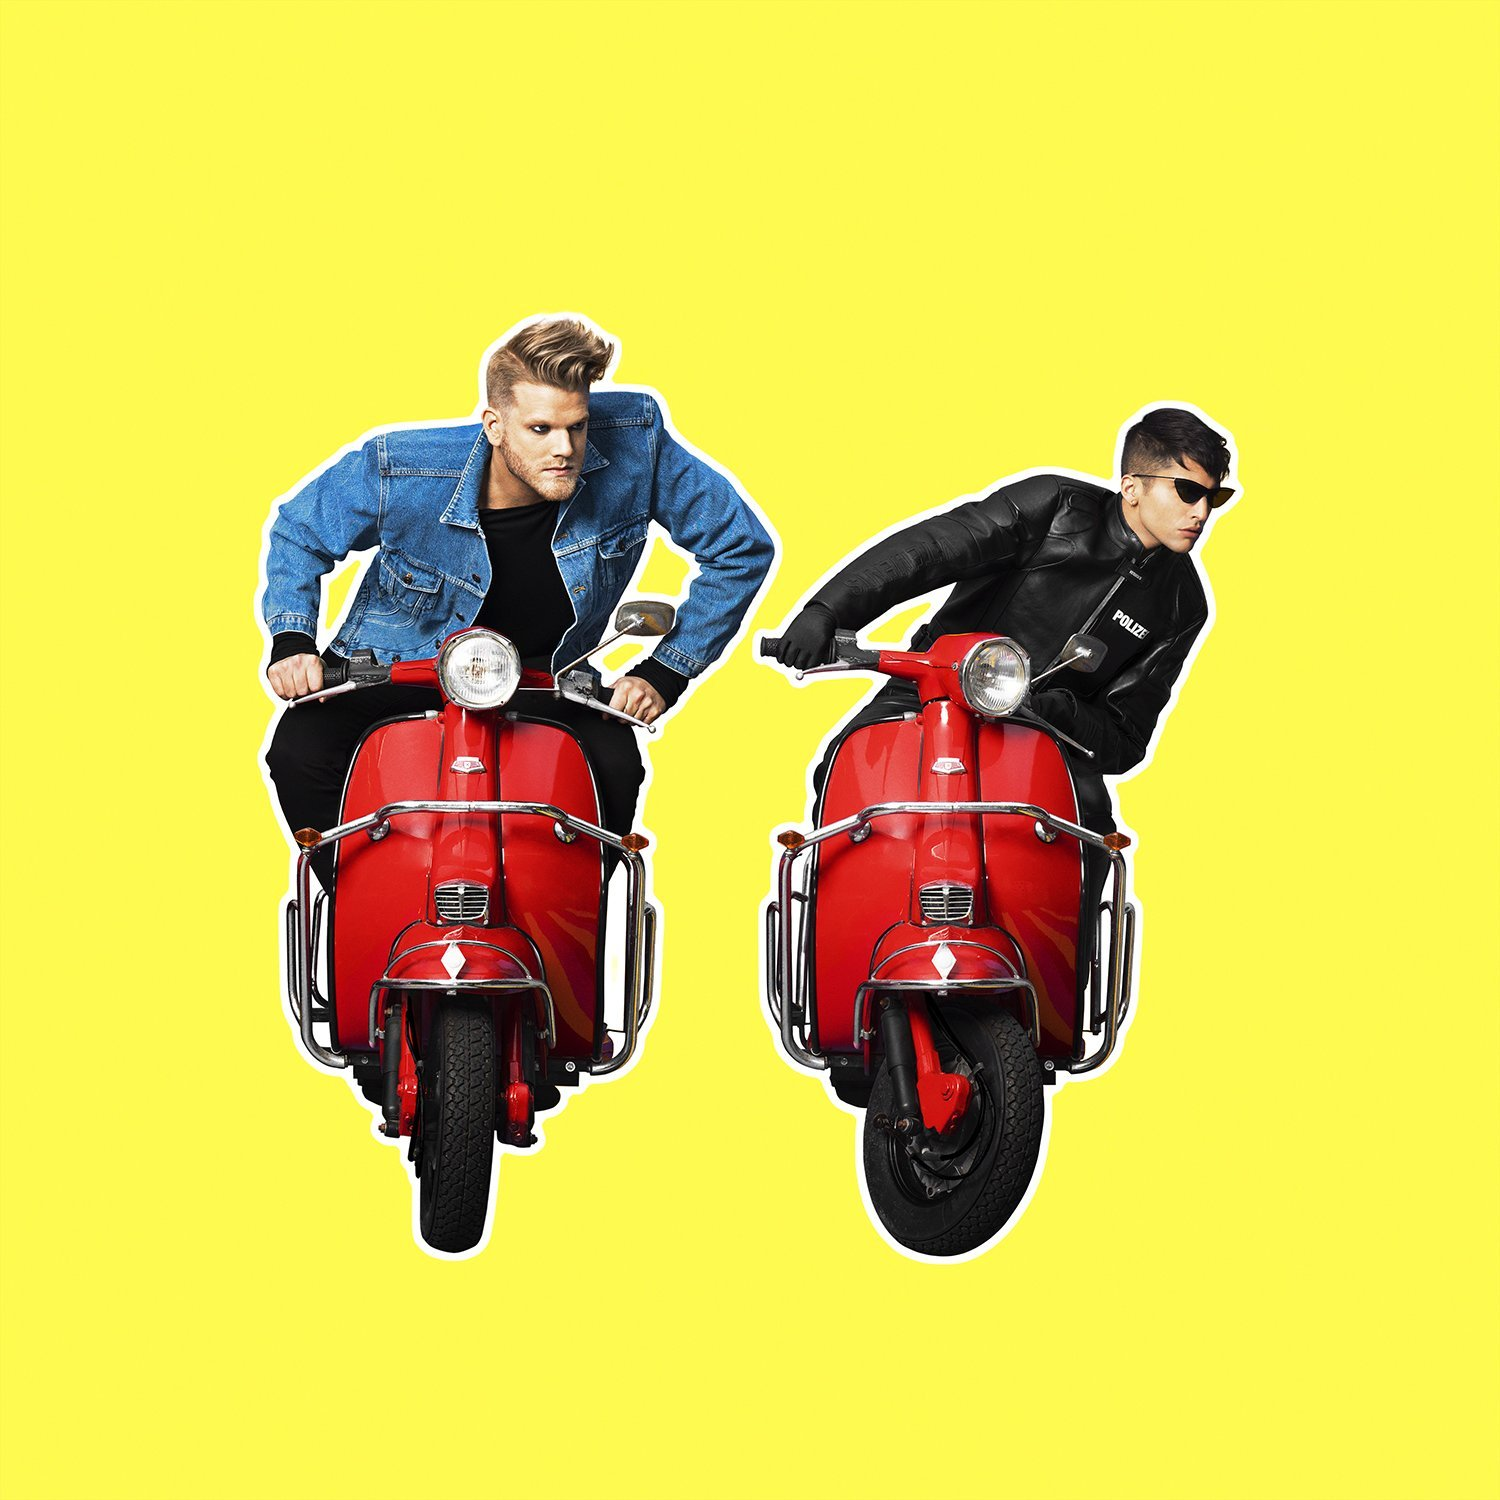 How Closely Did You Listen to 'Future Friends' by Superfruit? | Quiz